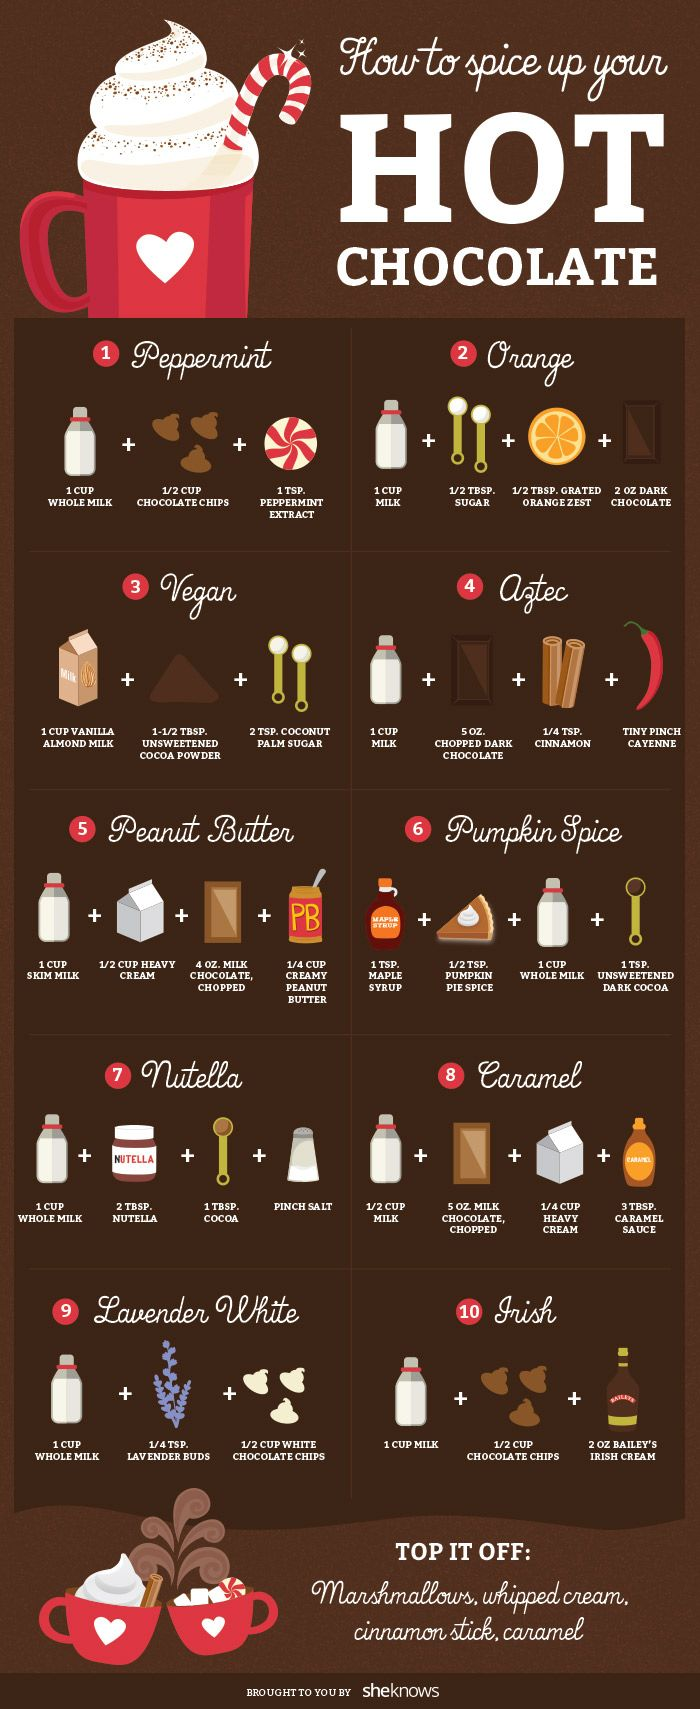 18 Delicious Ways to Spice Up Your Hot Chocolate